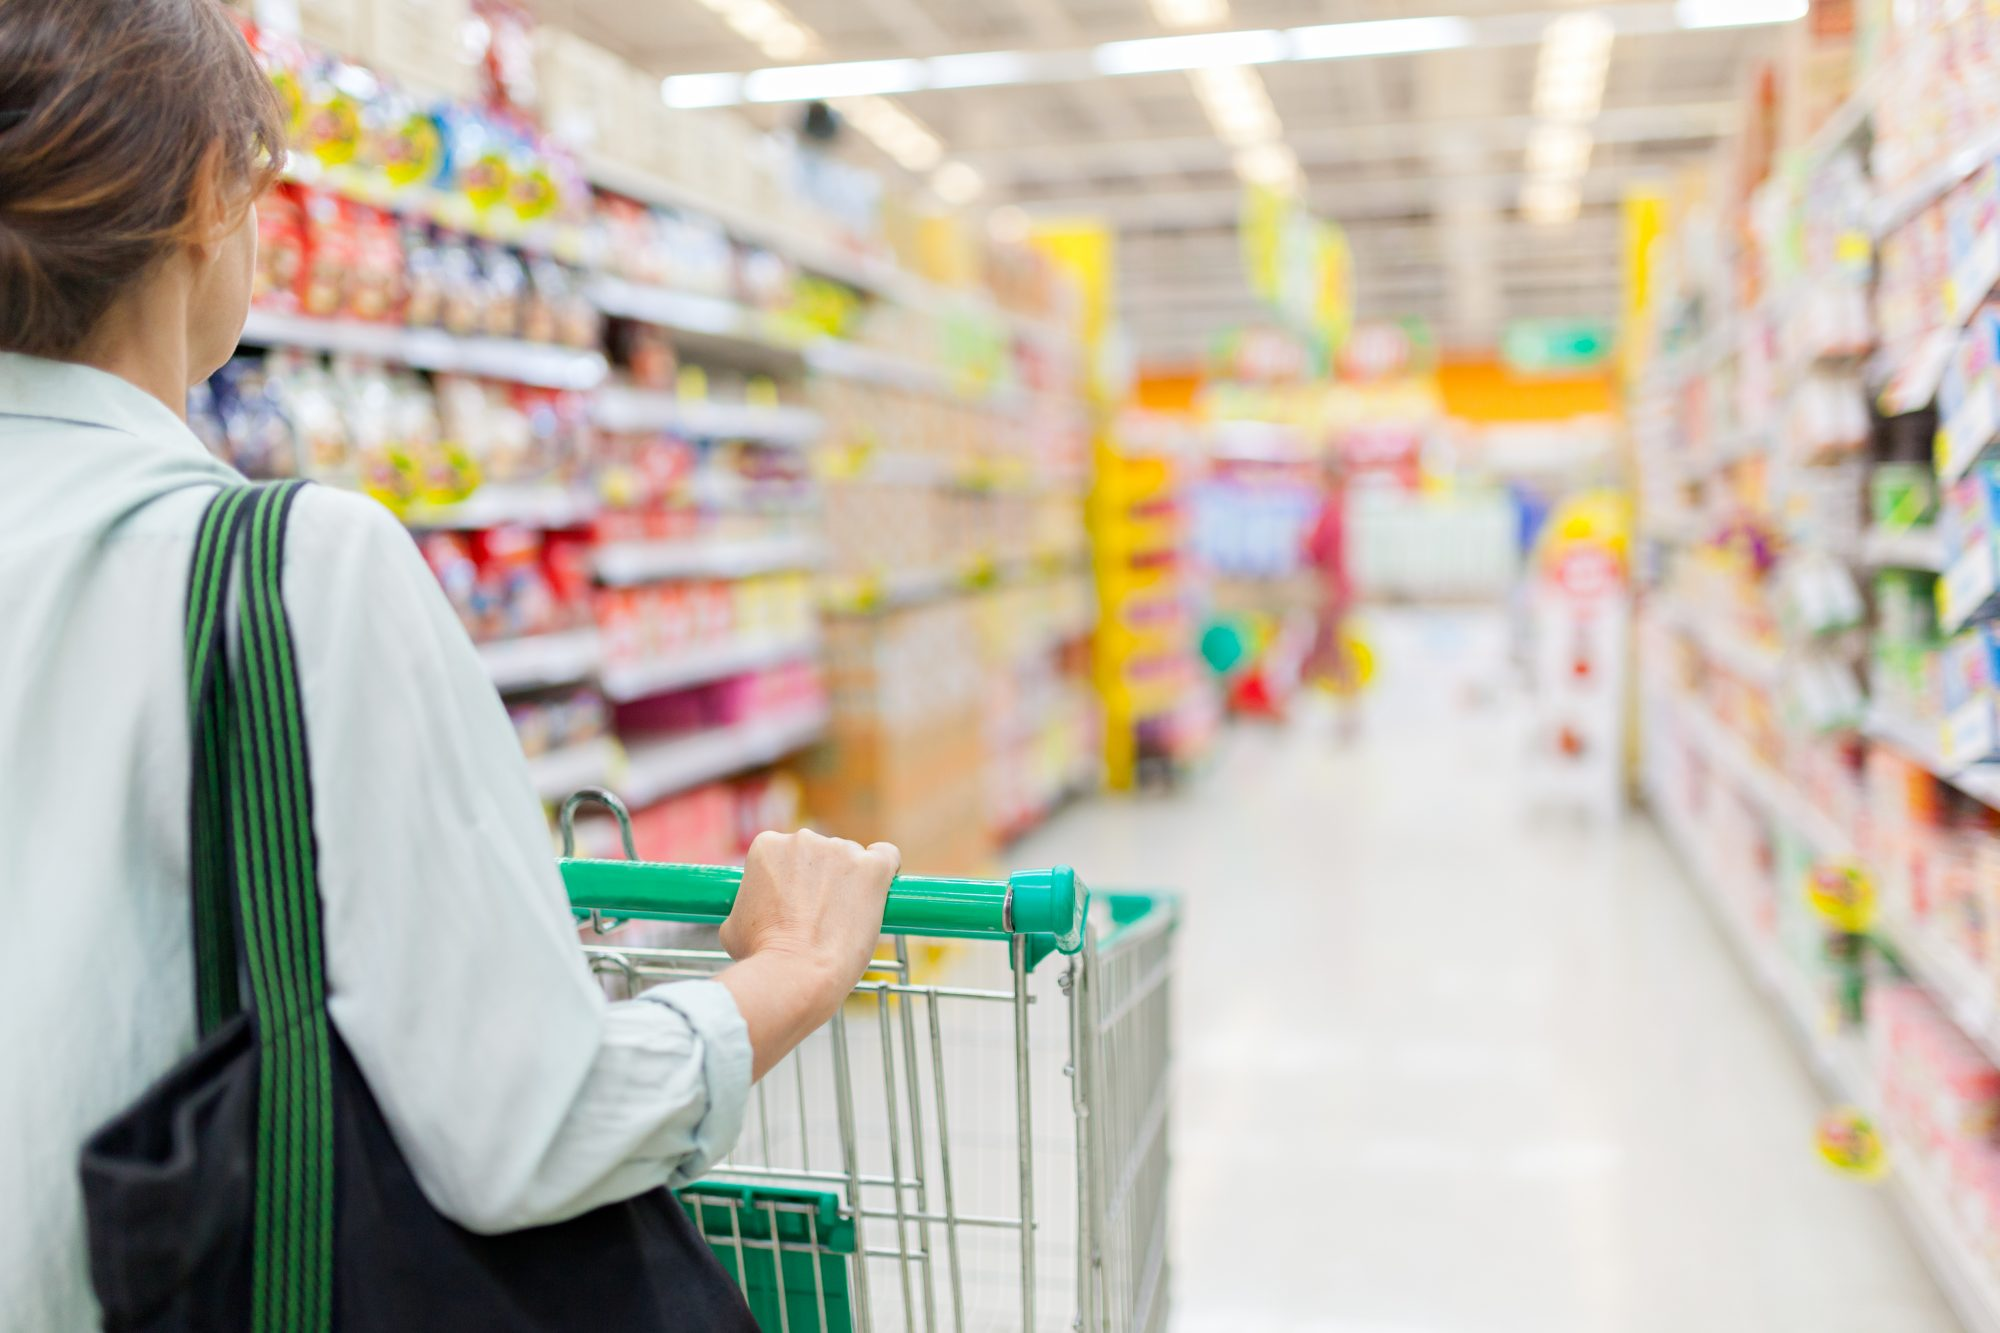 A Nutritionist Explains Why You Shouldn't Avoid the Middle Aisles of the Grocery Store